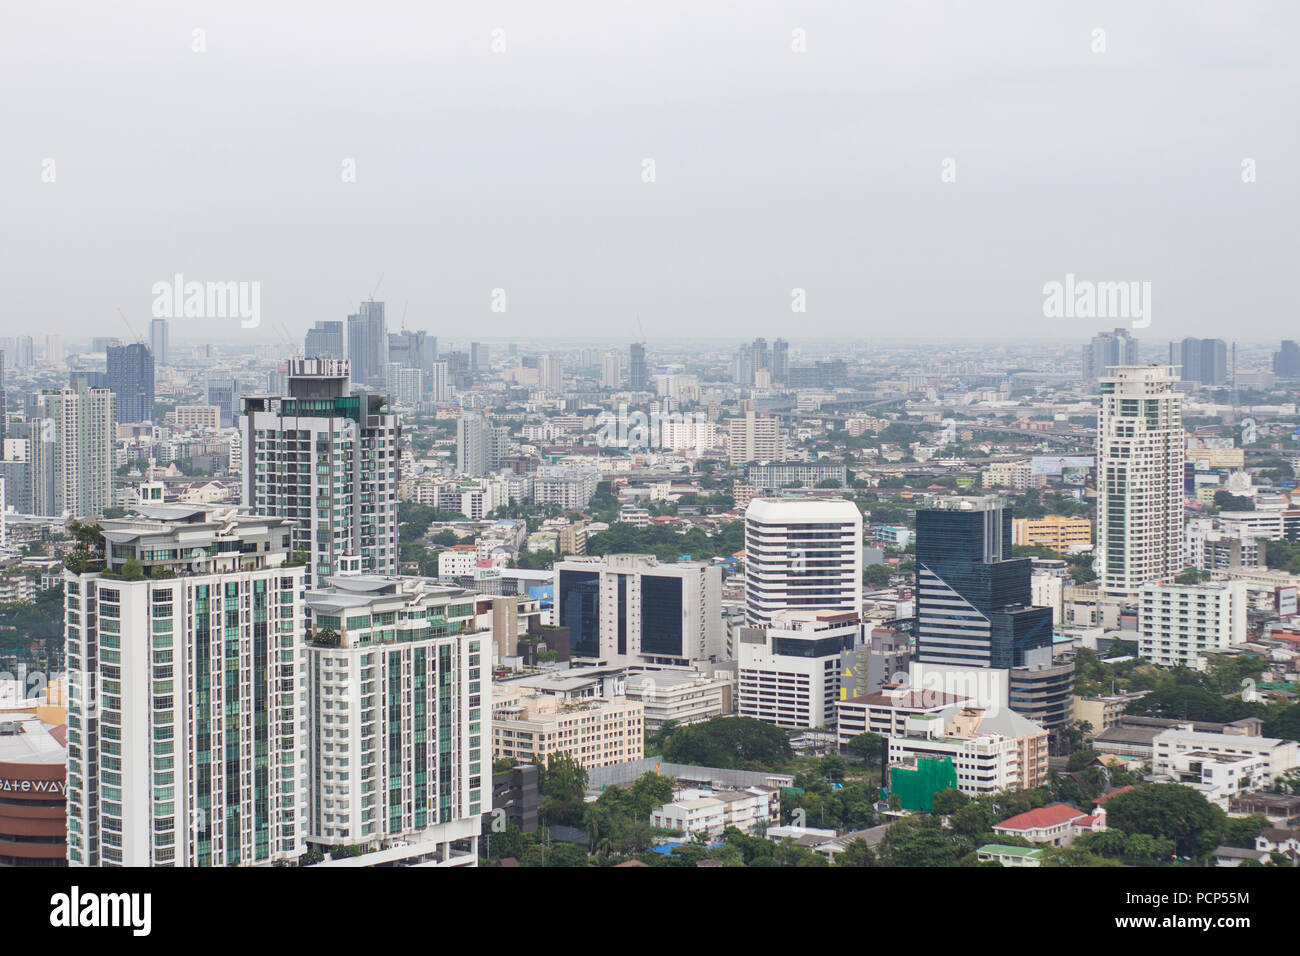 Marriott's Octave skybar and it's view along Sukhumvit Rd, Bangkok. - Stock Image